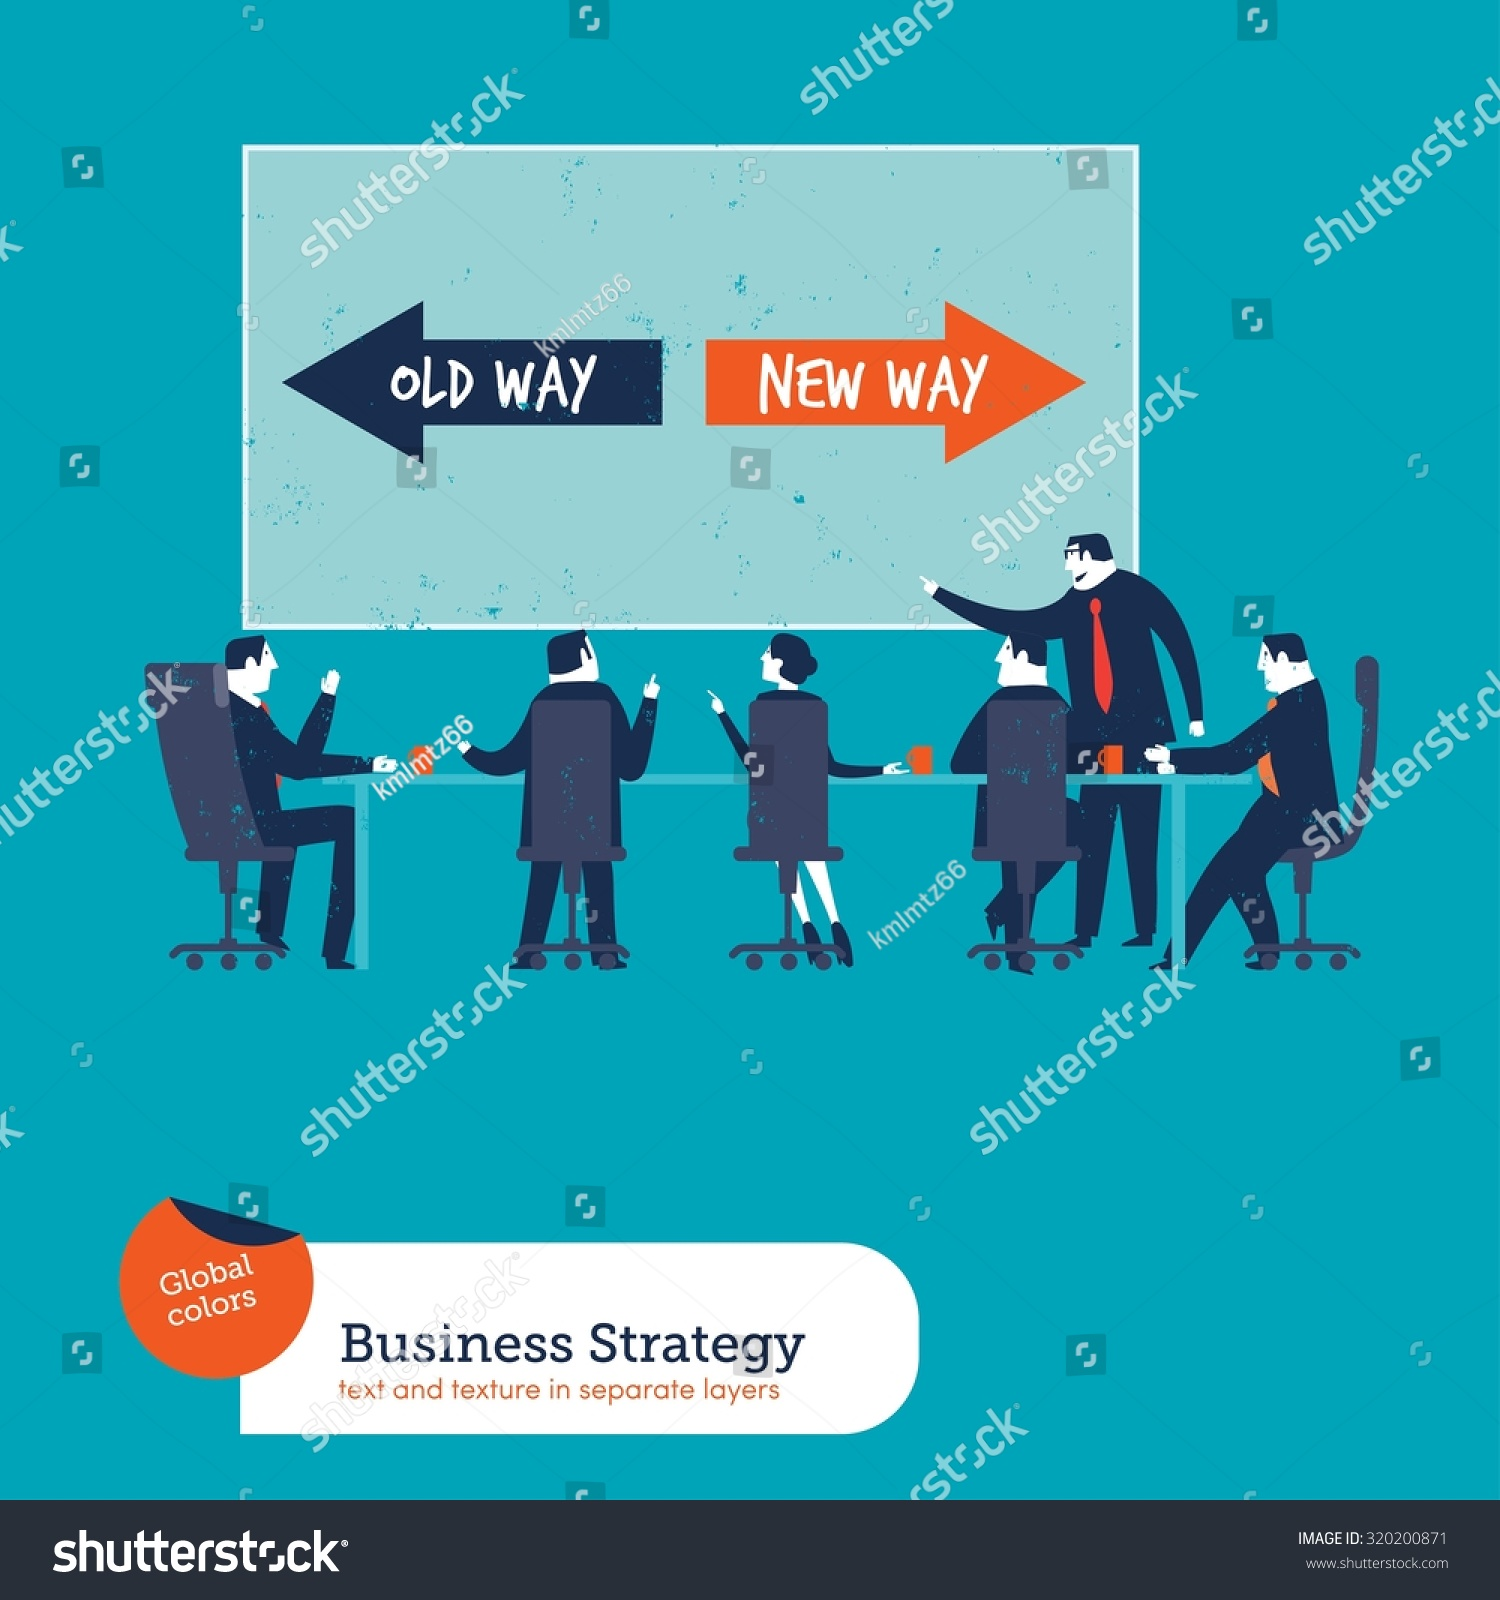 hight resolution of business meeting with chart old way new way vector illustration eps10 file global colors